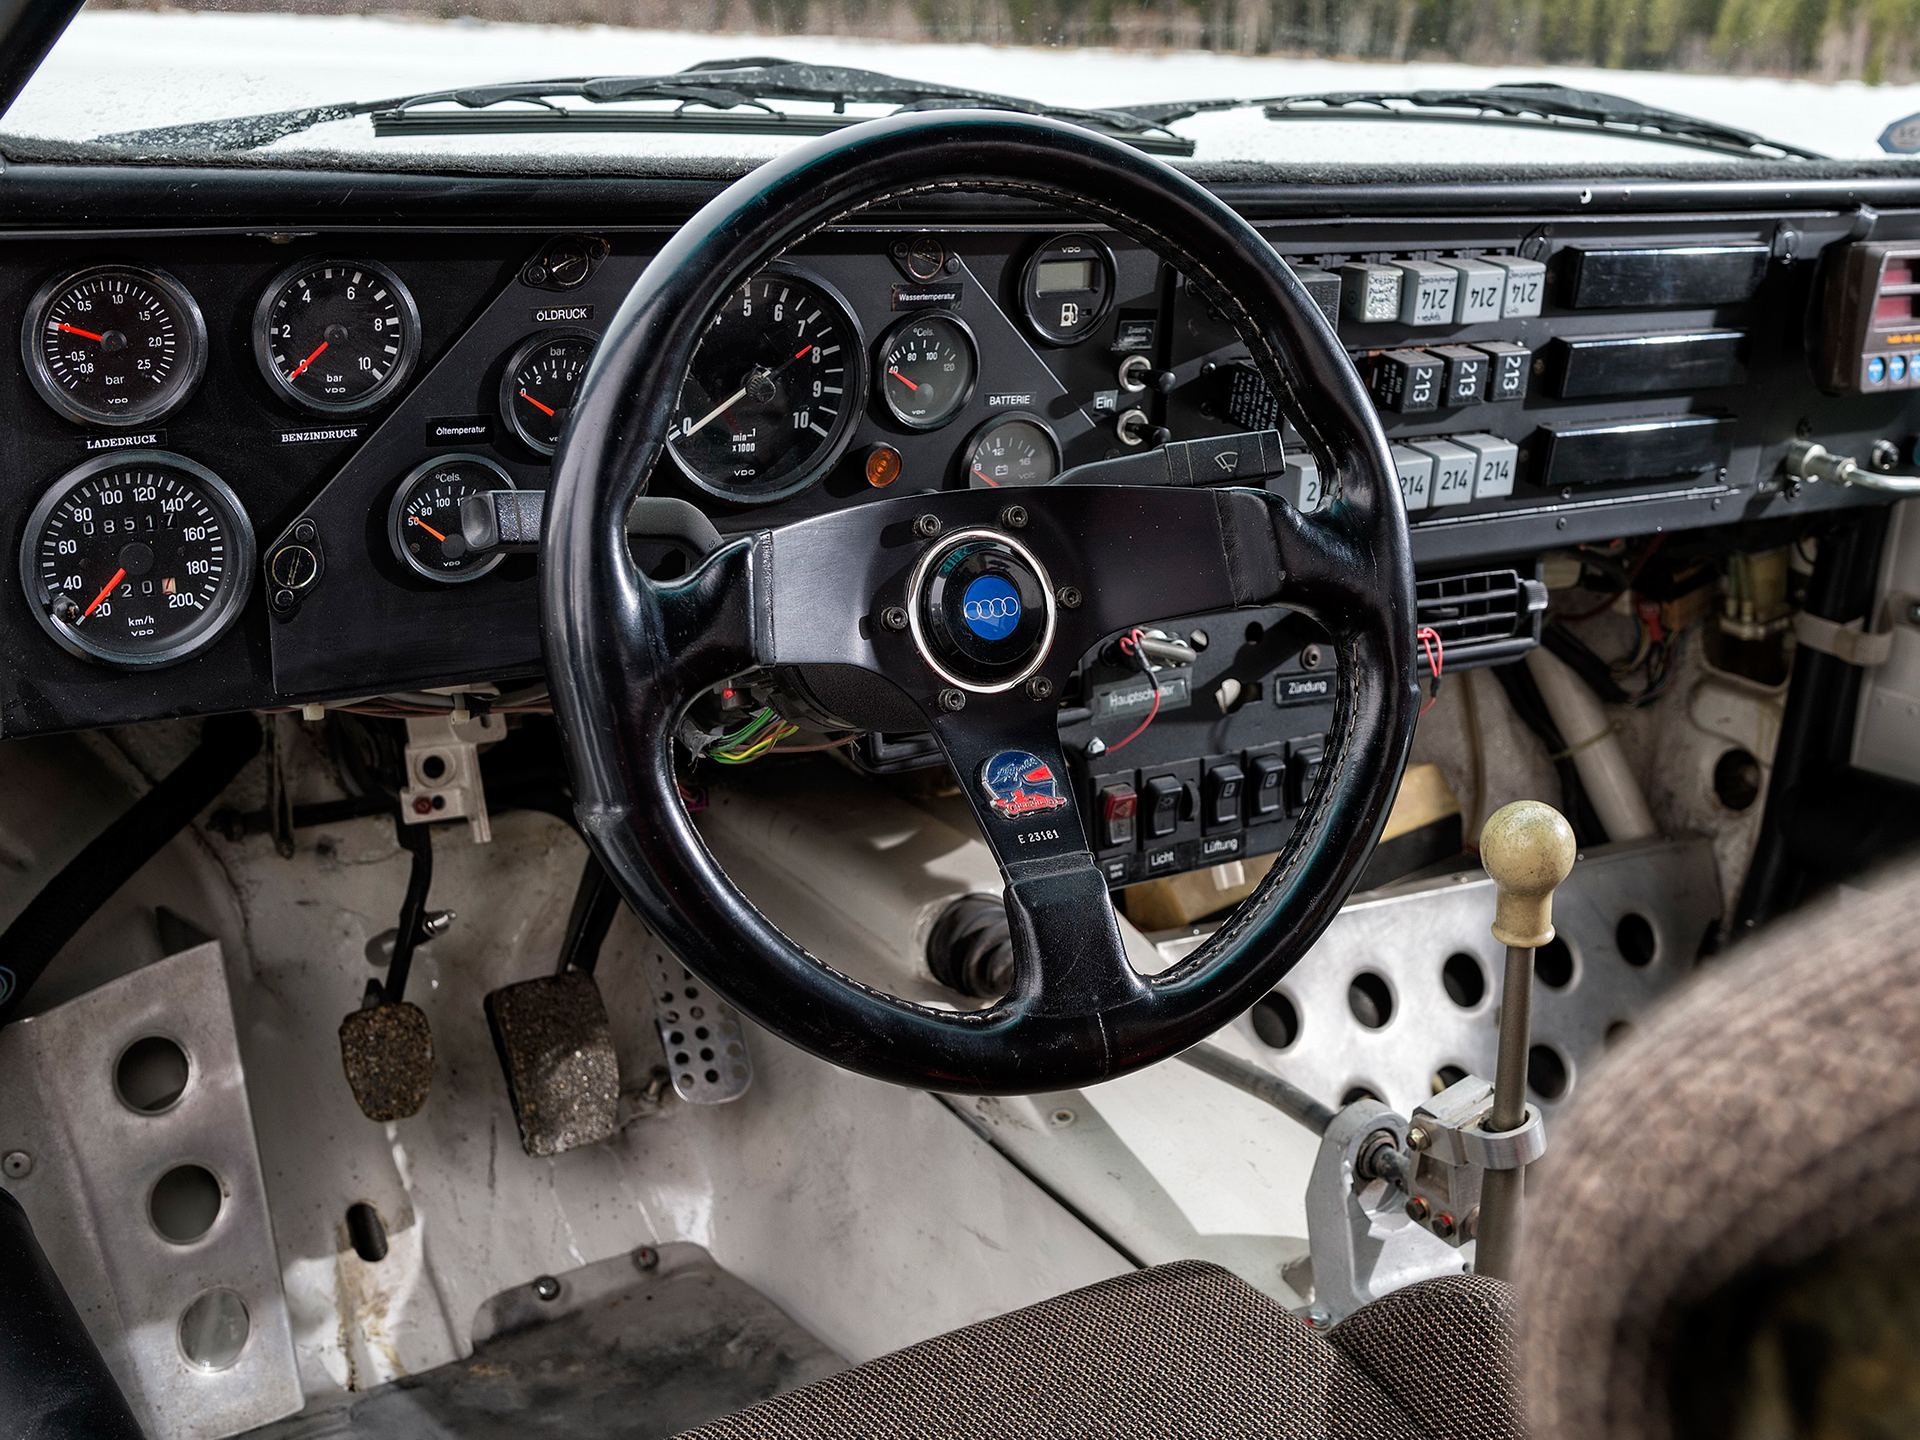 Audi Sport quattro S1 - FIA Group B Rally Car - 1985 - 1986 - racing wheel / volant